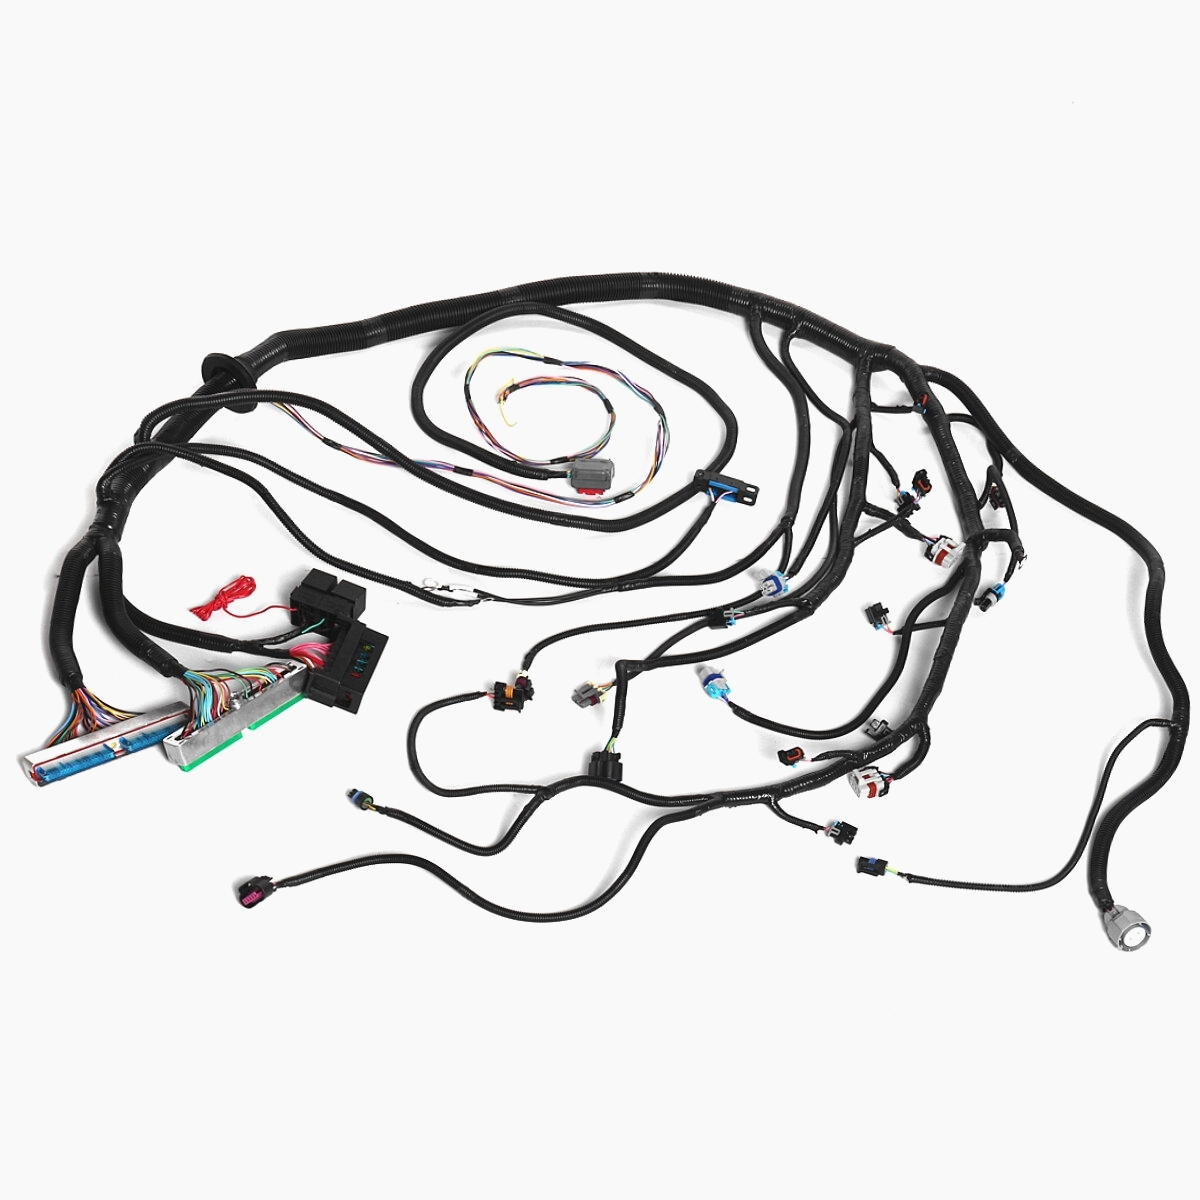 [REVIEW] 03 07 LS Vortec Standalone Wiring Harness